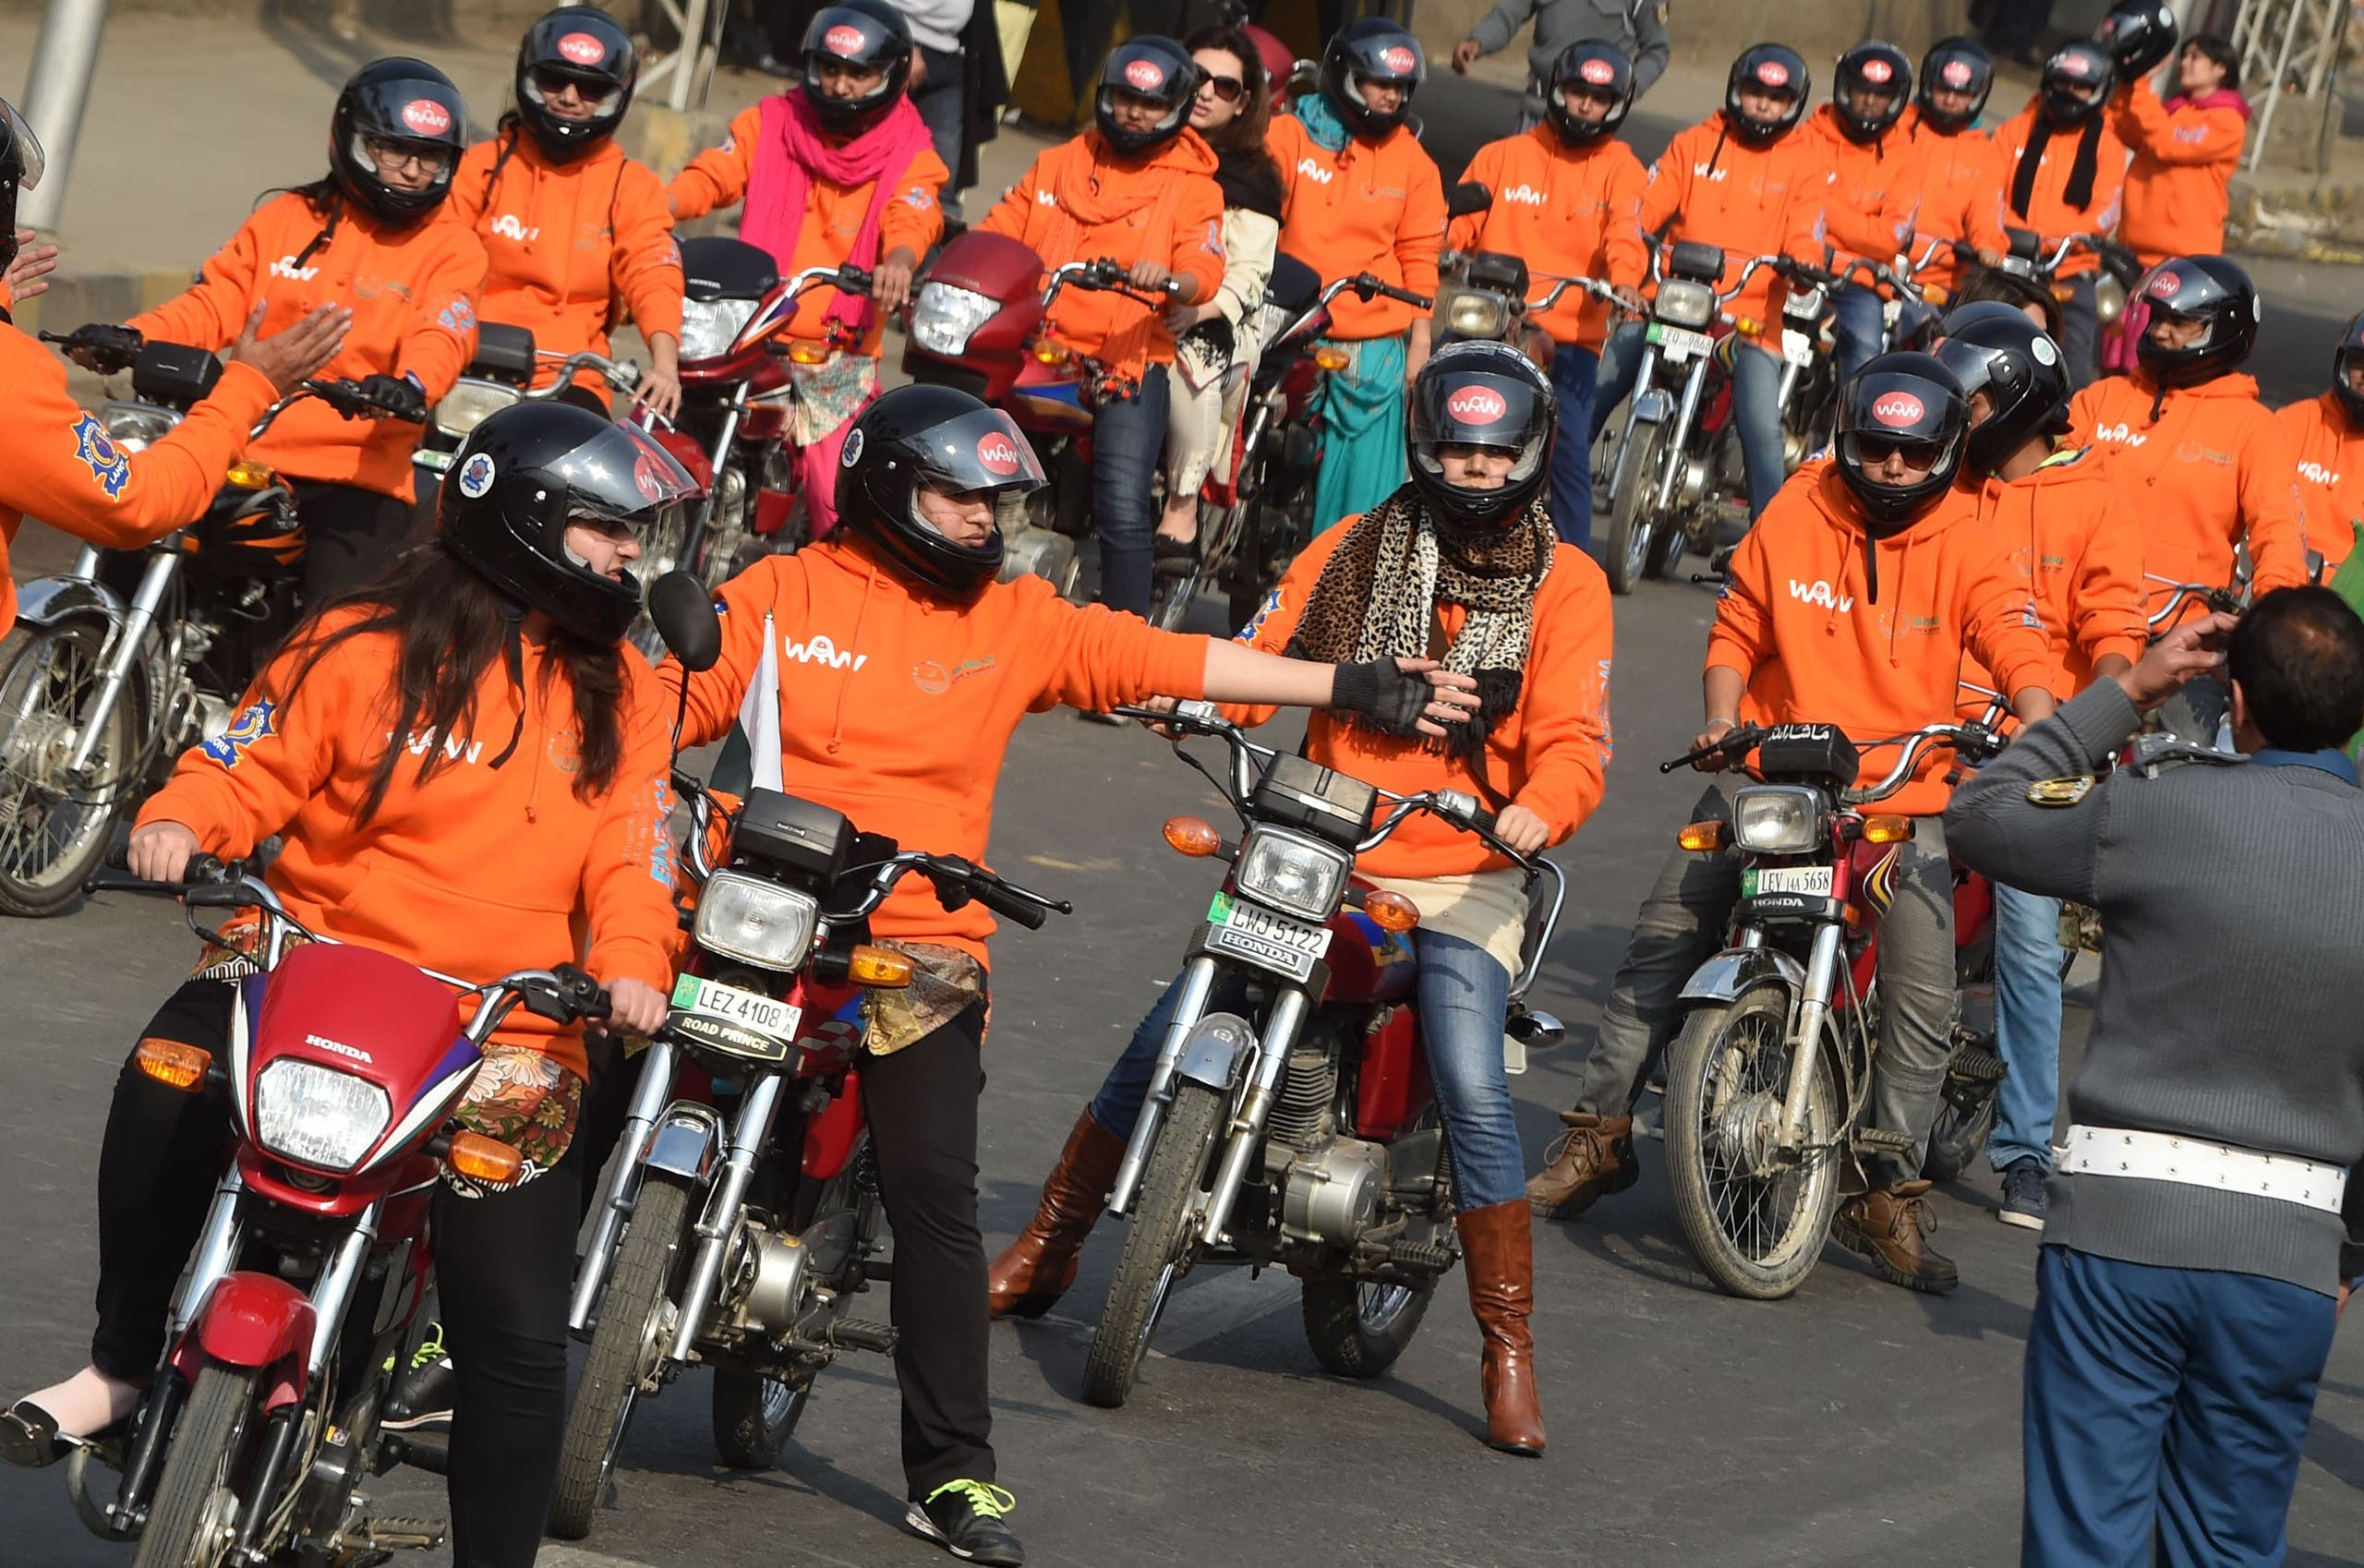 Women participants of Women on Wheels (WOW) wait on their motor-bikes prior to the start of a rally launching the Women on Wheels campaign in Lahore on January 10, 2016. (AFP)